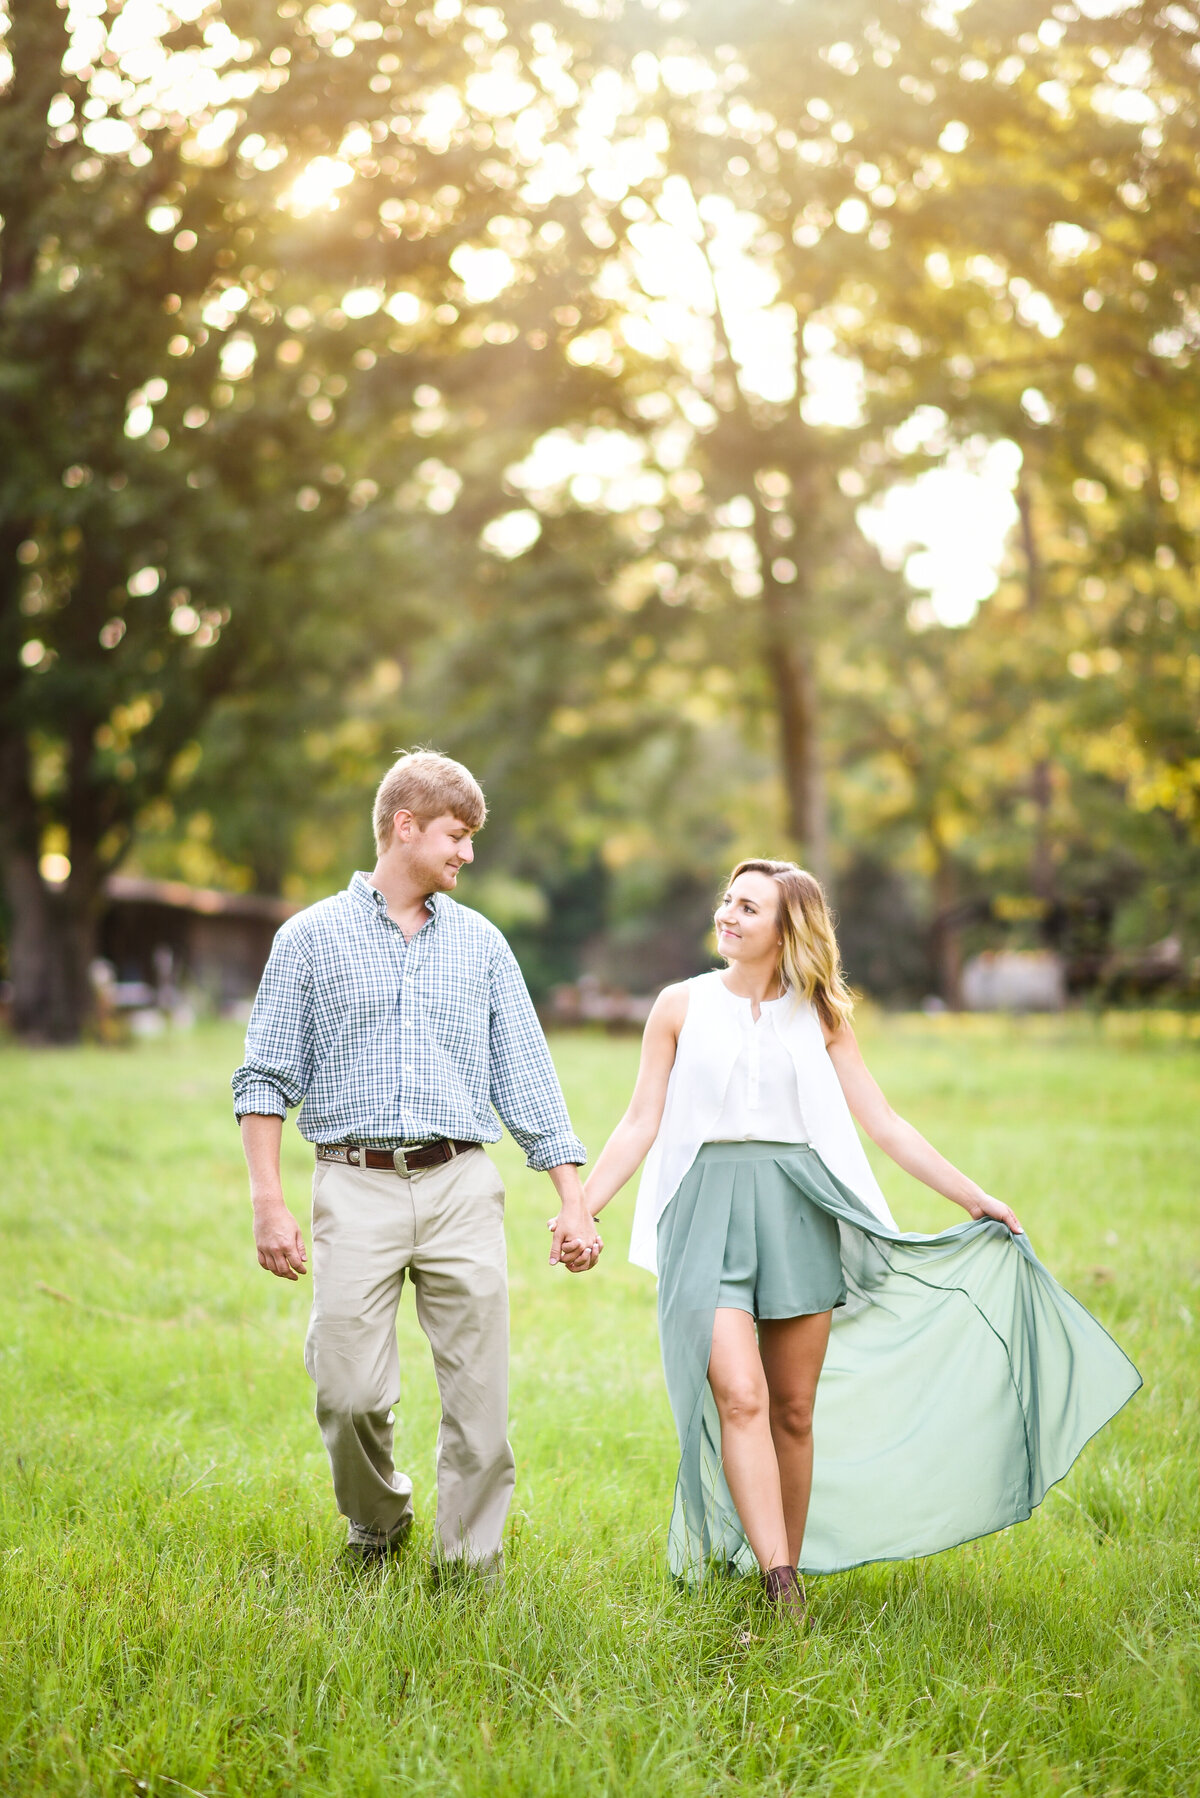 Beautiful Mississippi Engagement Photography: couple walks holding hands in a field during sunset with bride in flowy skirt